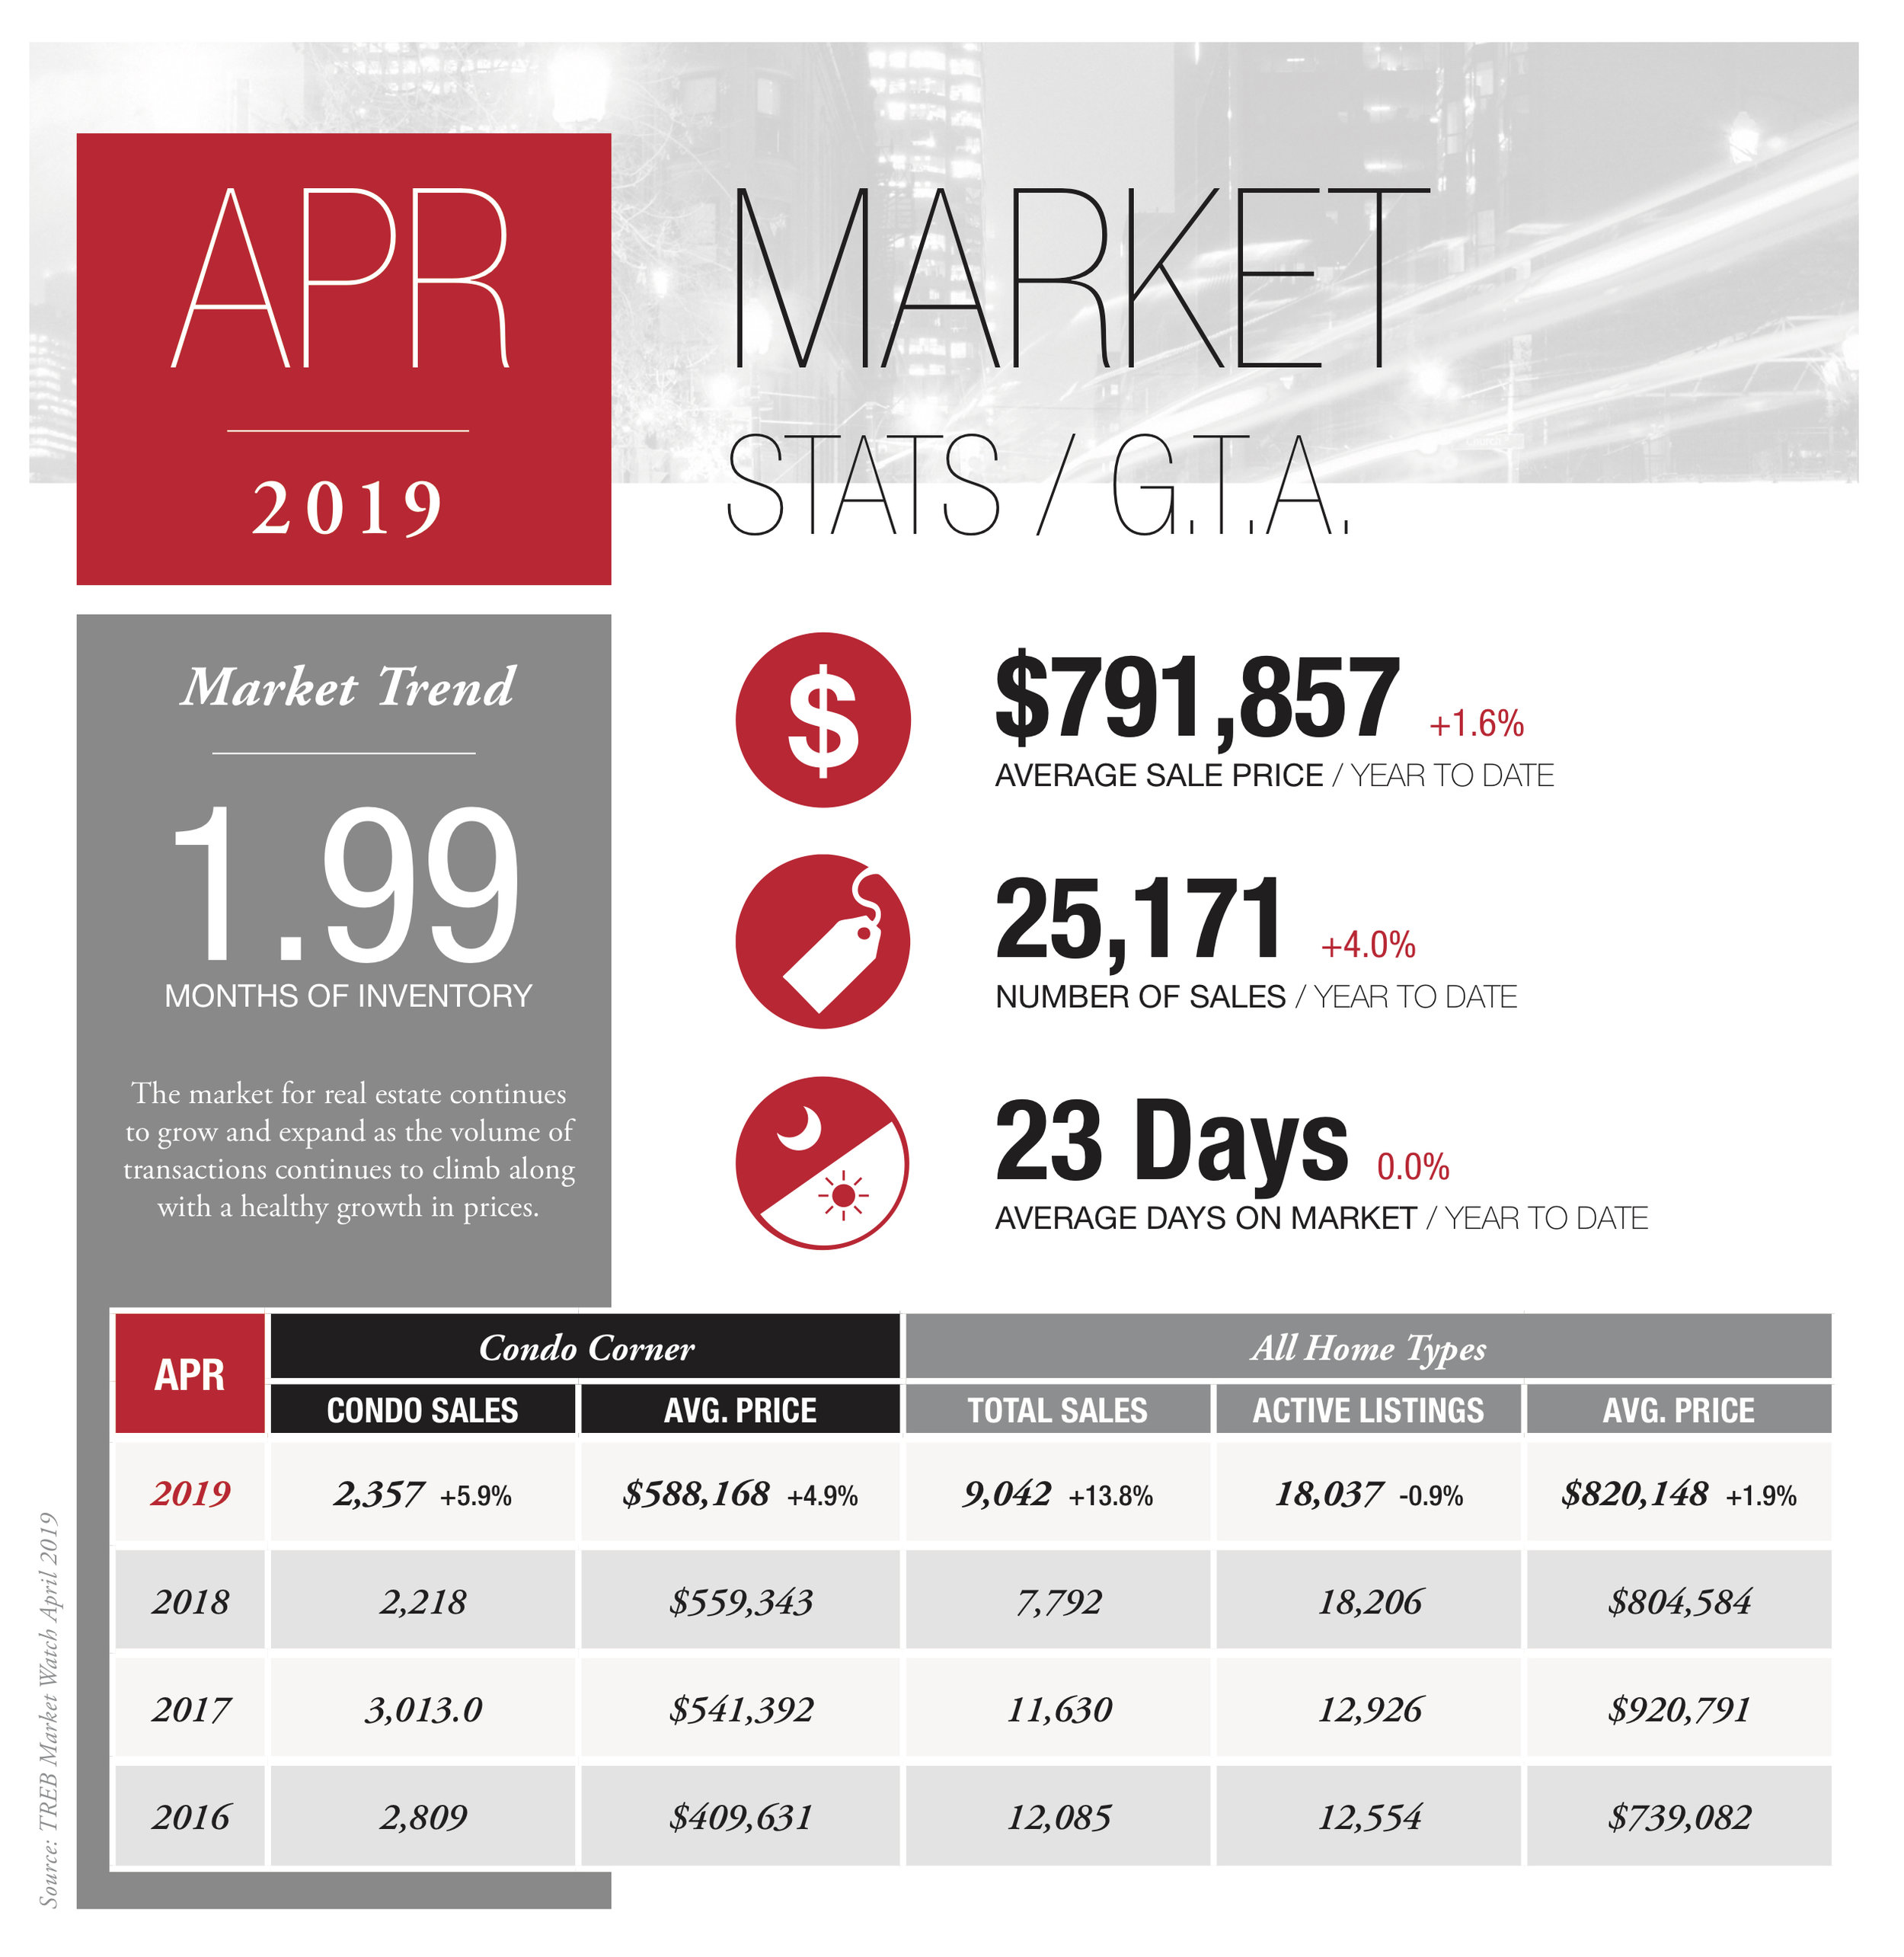 RLPS_Apr_Infographic_GTA_Let_May6_2019.jpg